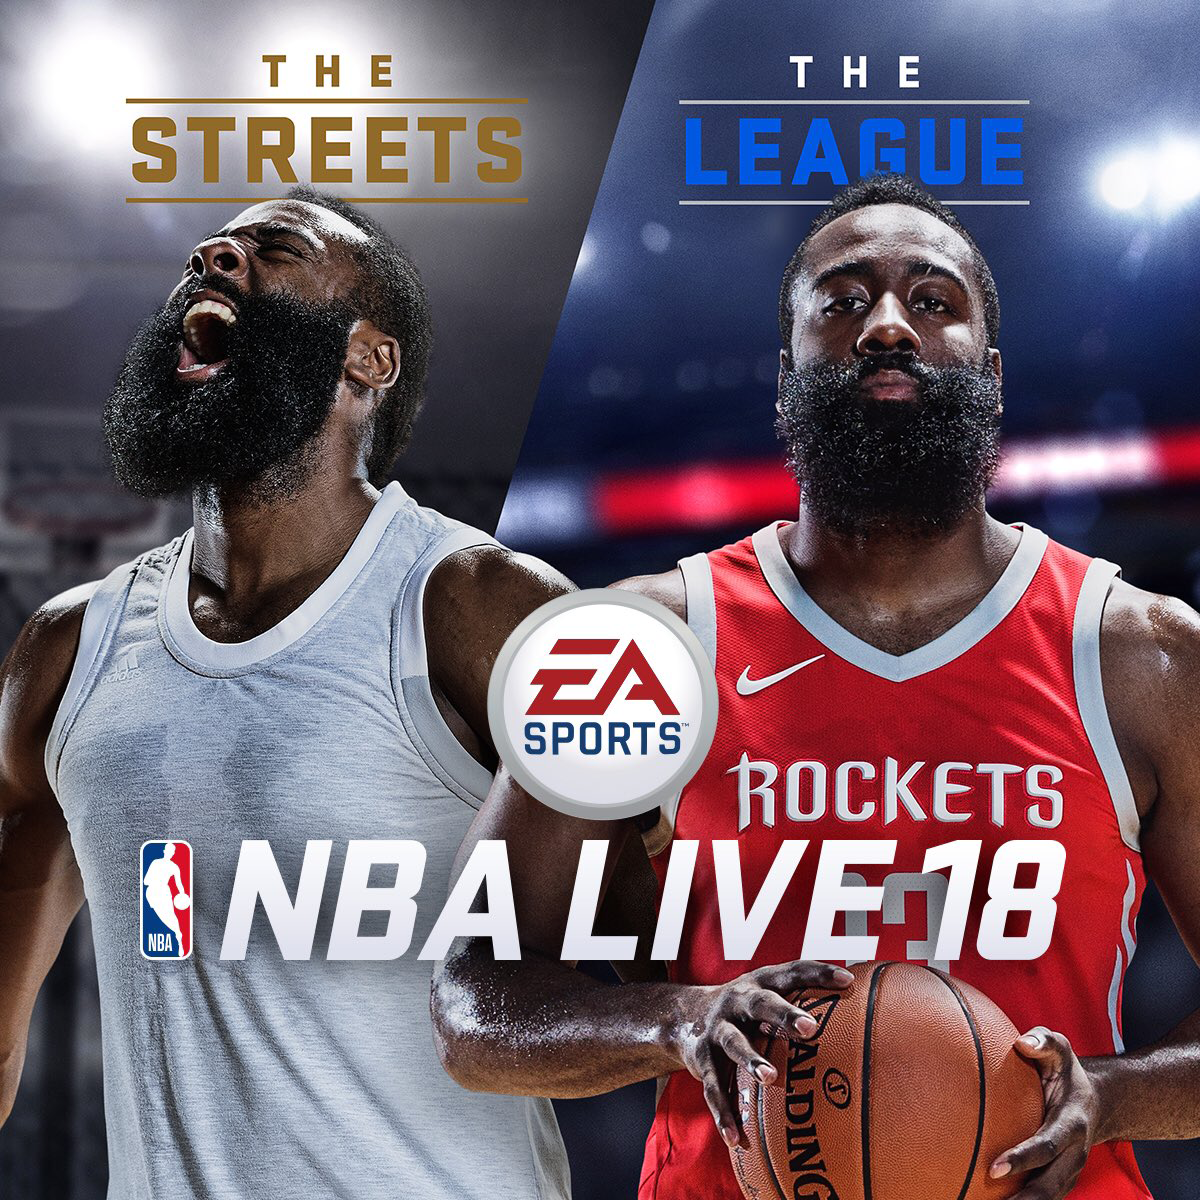 New Cover S Alert The 2017 18 Nba Rookies: NBA Live 18 Cover Player Is James Harden; Demo Out Today